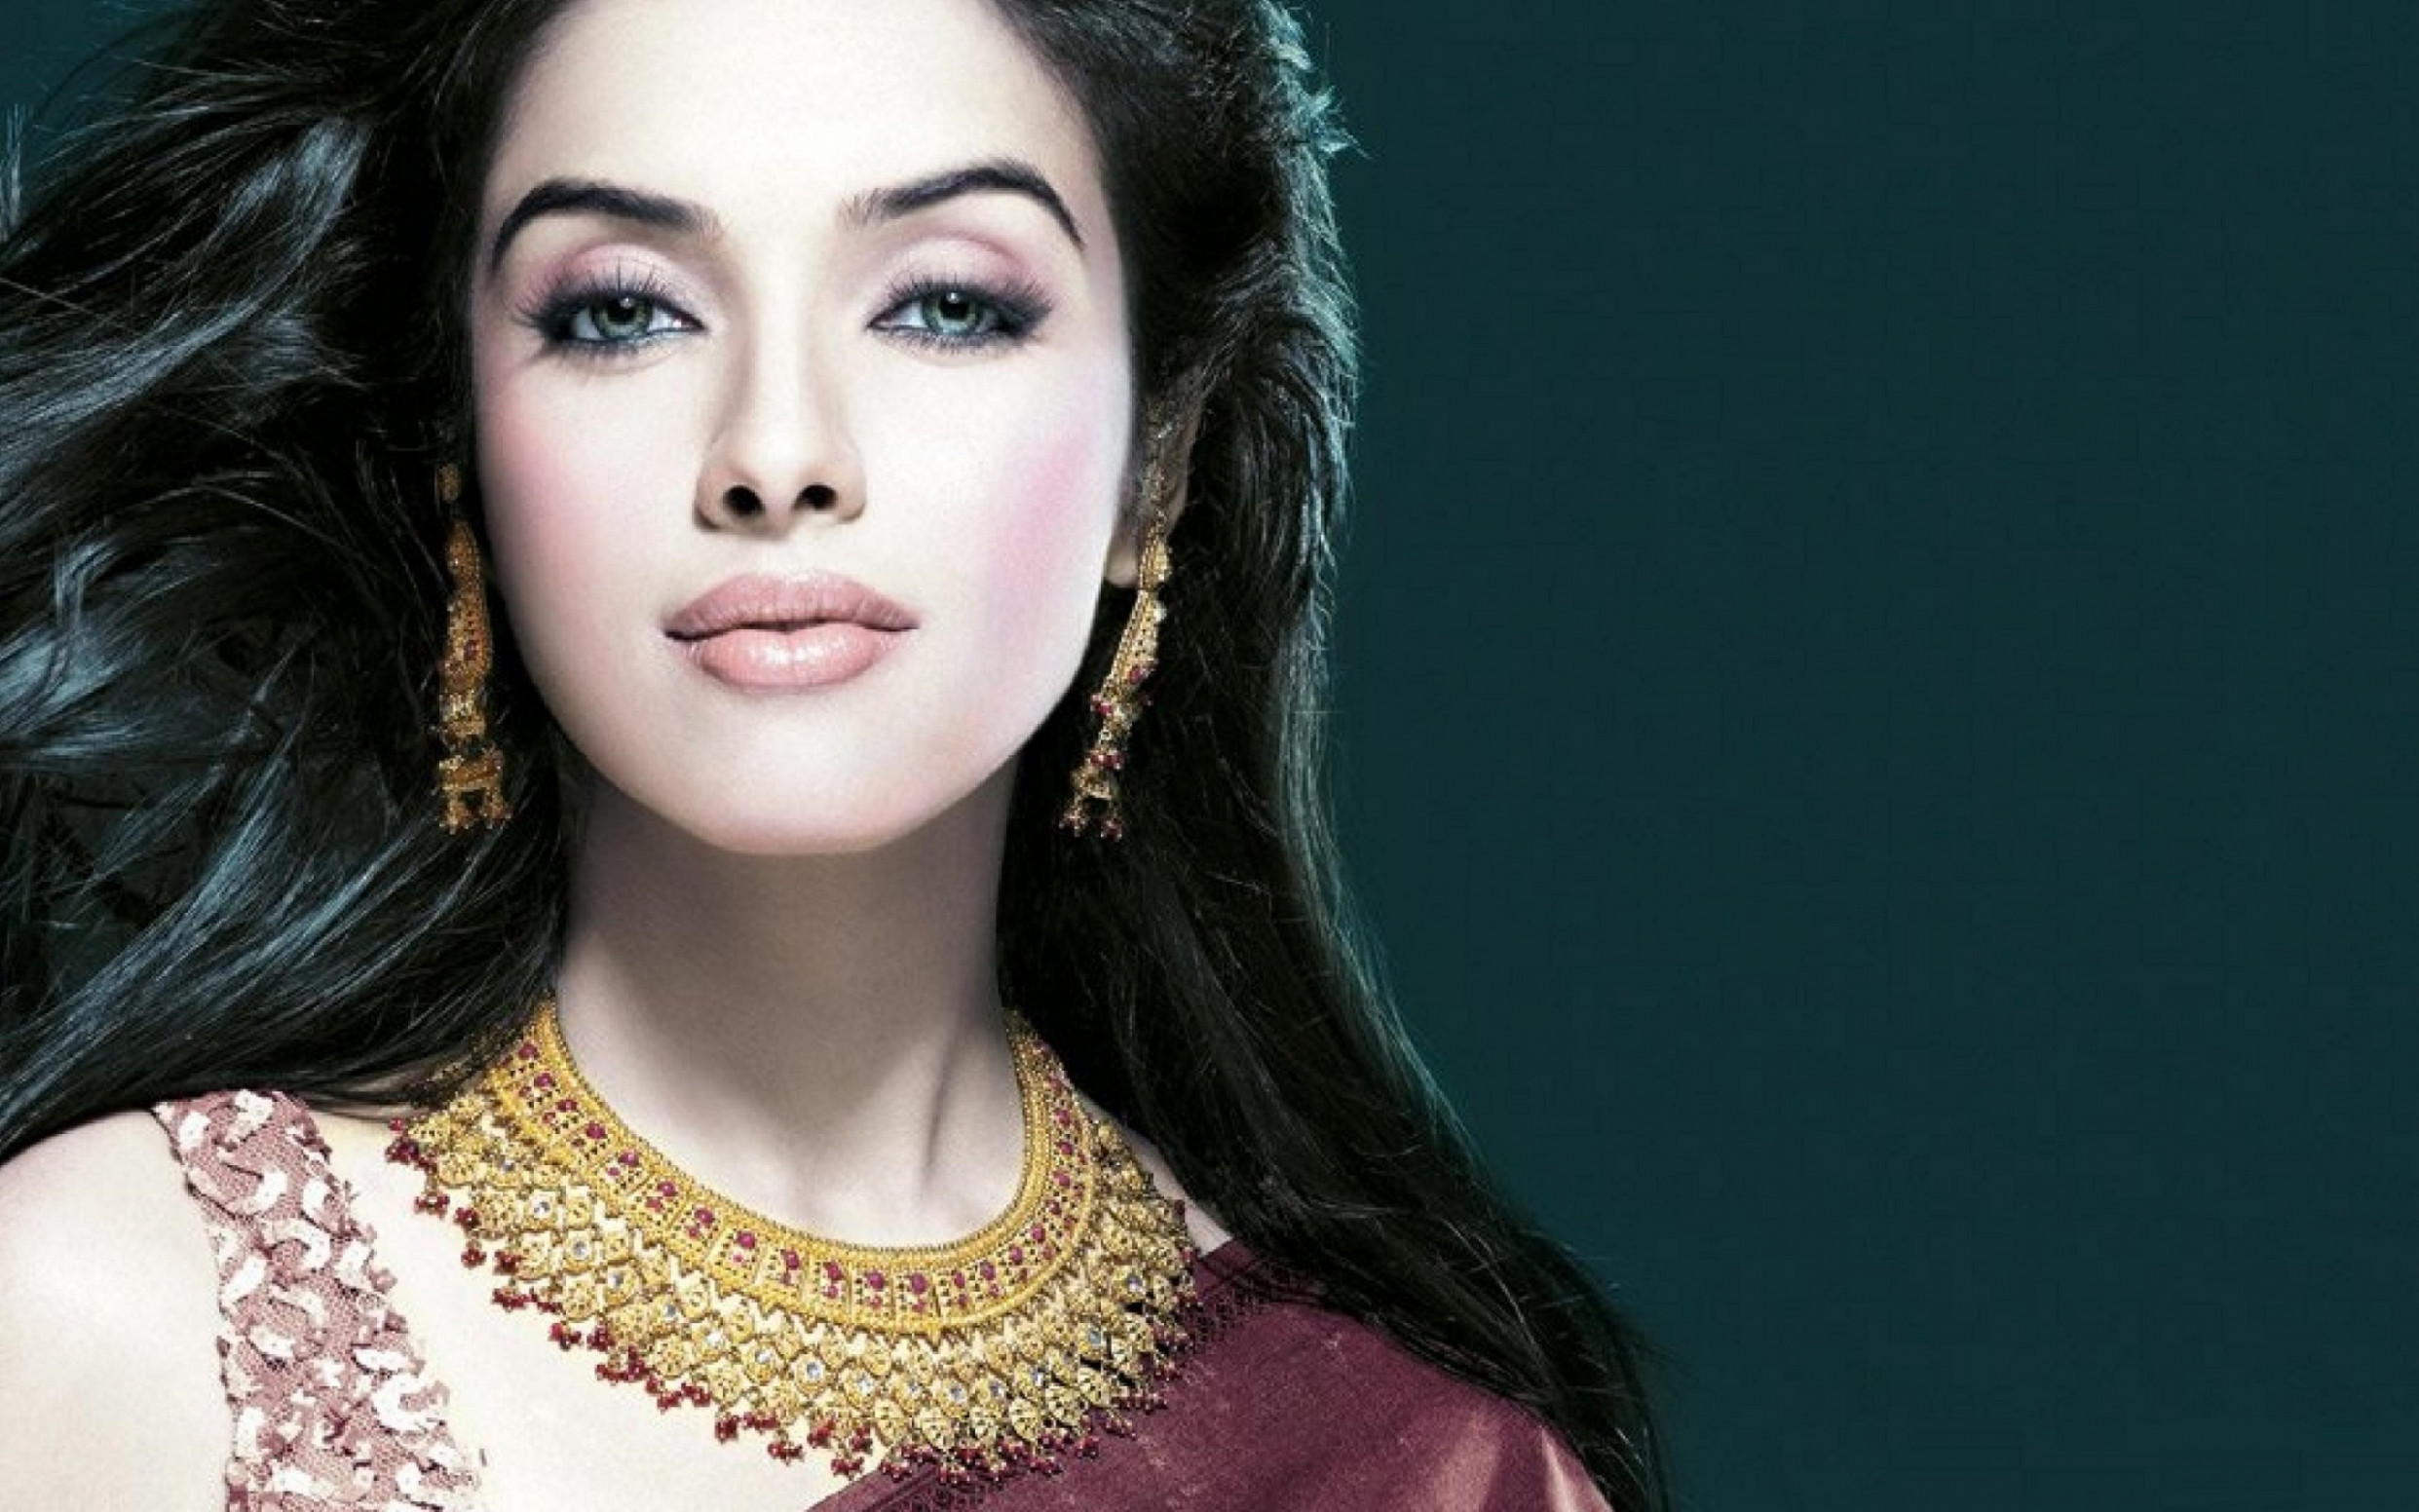 Asin Tollywood Actress Wallpaper | HD Wallpapers - how to become a tollywood actress